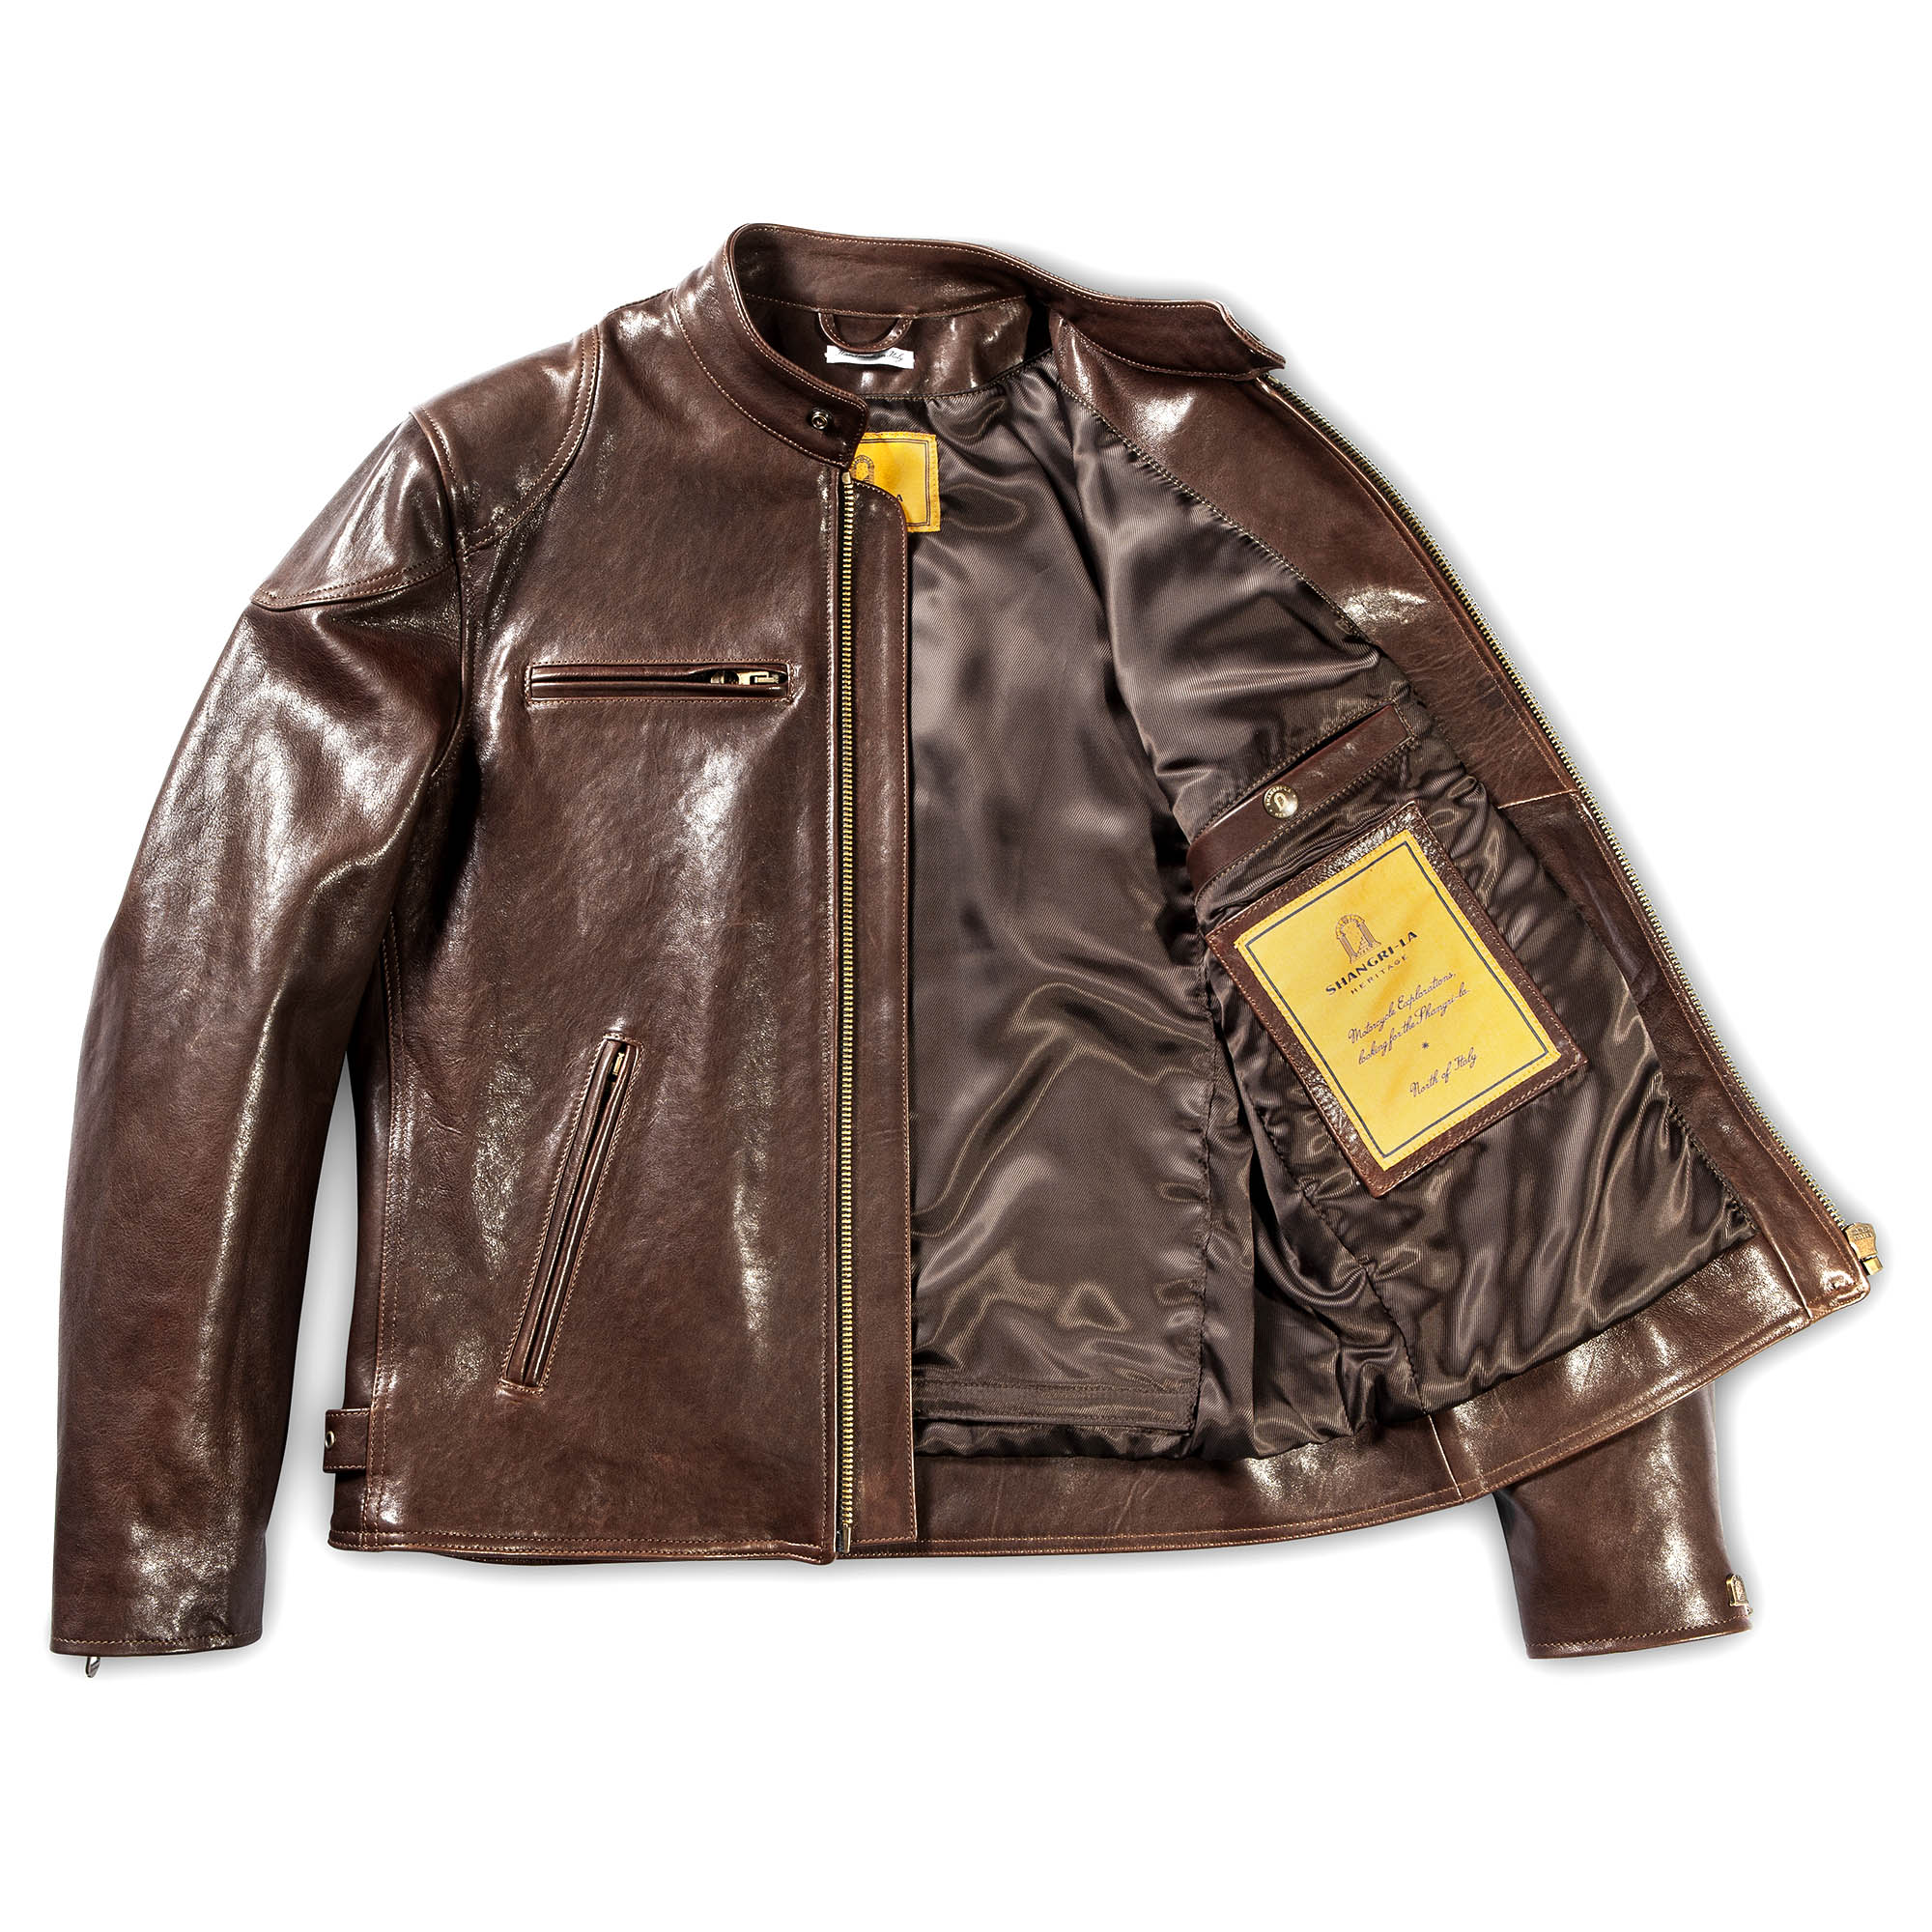 shangri-la-heritage-cafe-racer-brown-lambskin-jacket-still-life-open